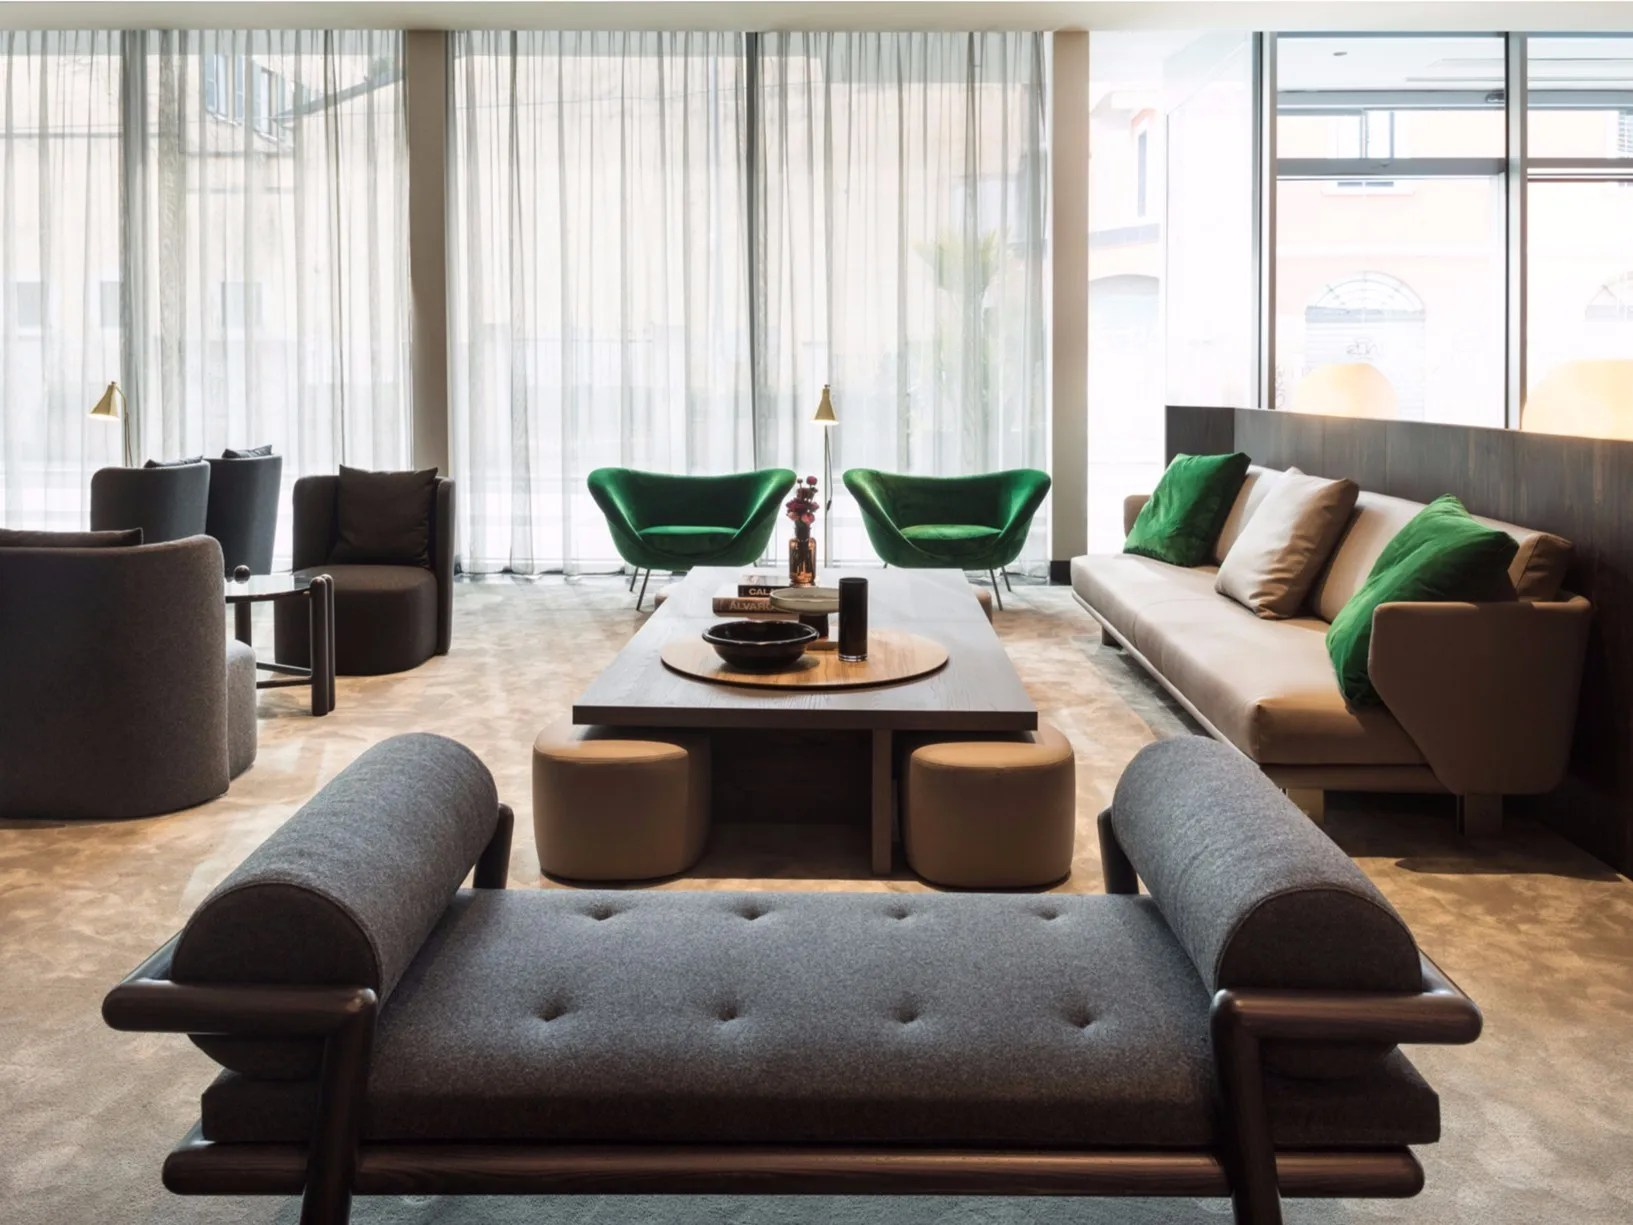 Molteni C Furnishes Viu Hotel In Milan